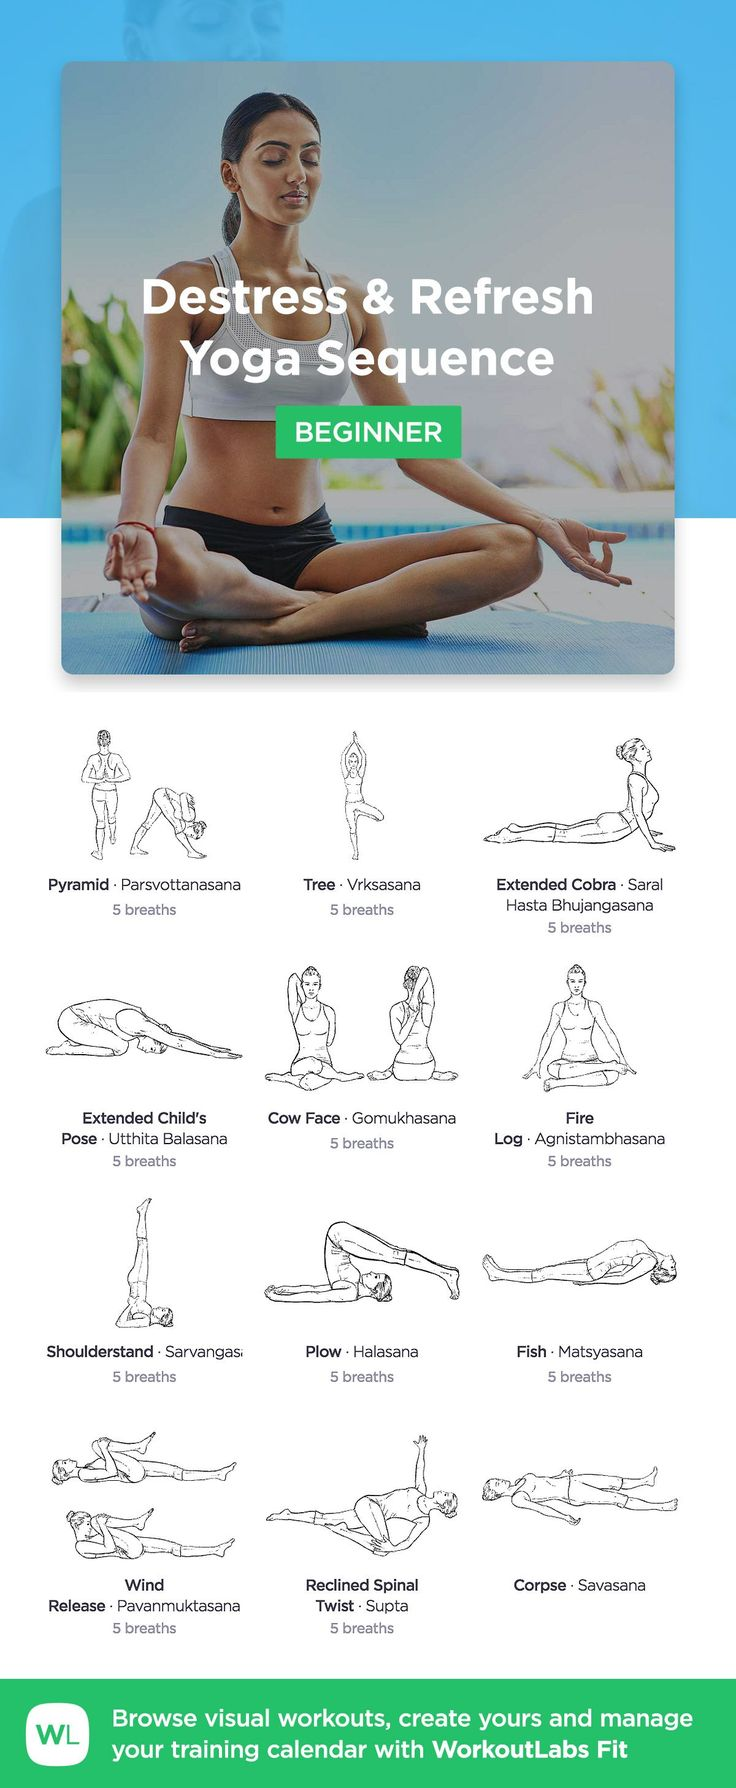 Destress and Refresh Yoga Sequence for beginners by WorkoutLabs Fit · View and download printable PDF: https://workoutlabs.com/s/uHIut